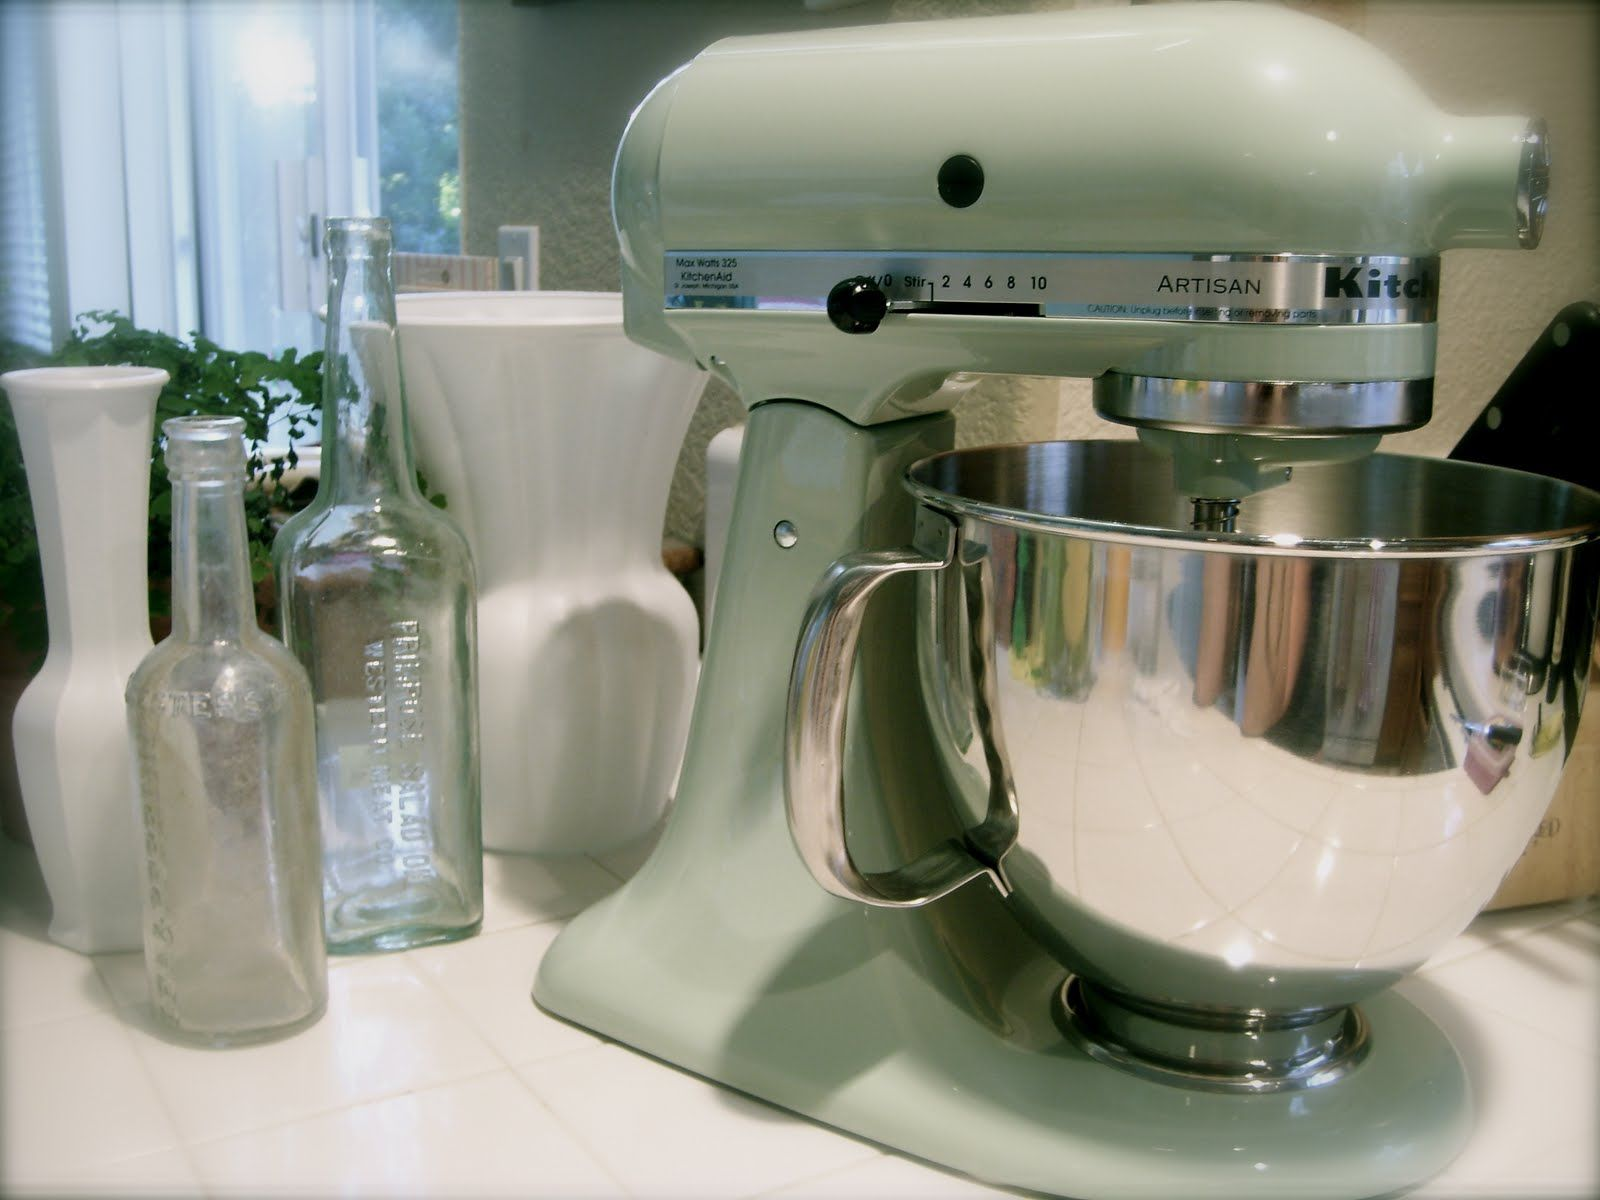 my dream a pistachio kitchenaid kitchenaid - Artisan Kitchenaid Mixer